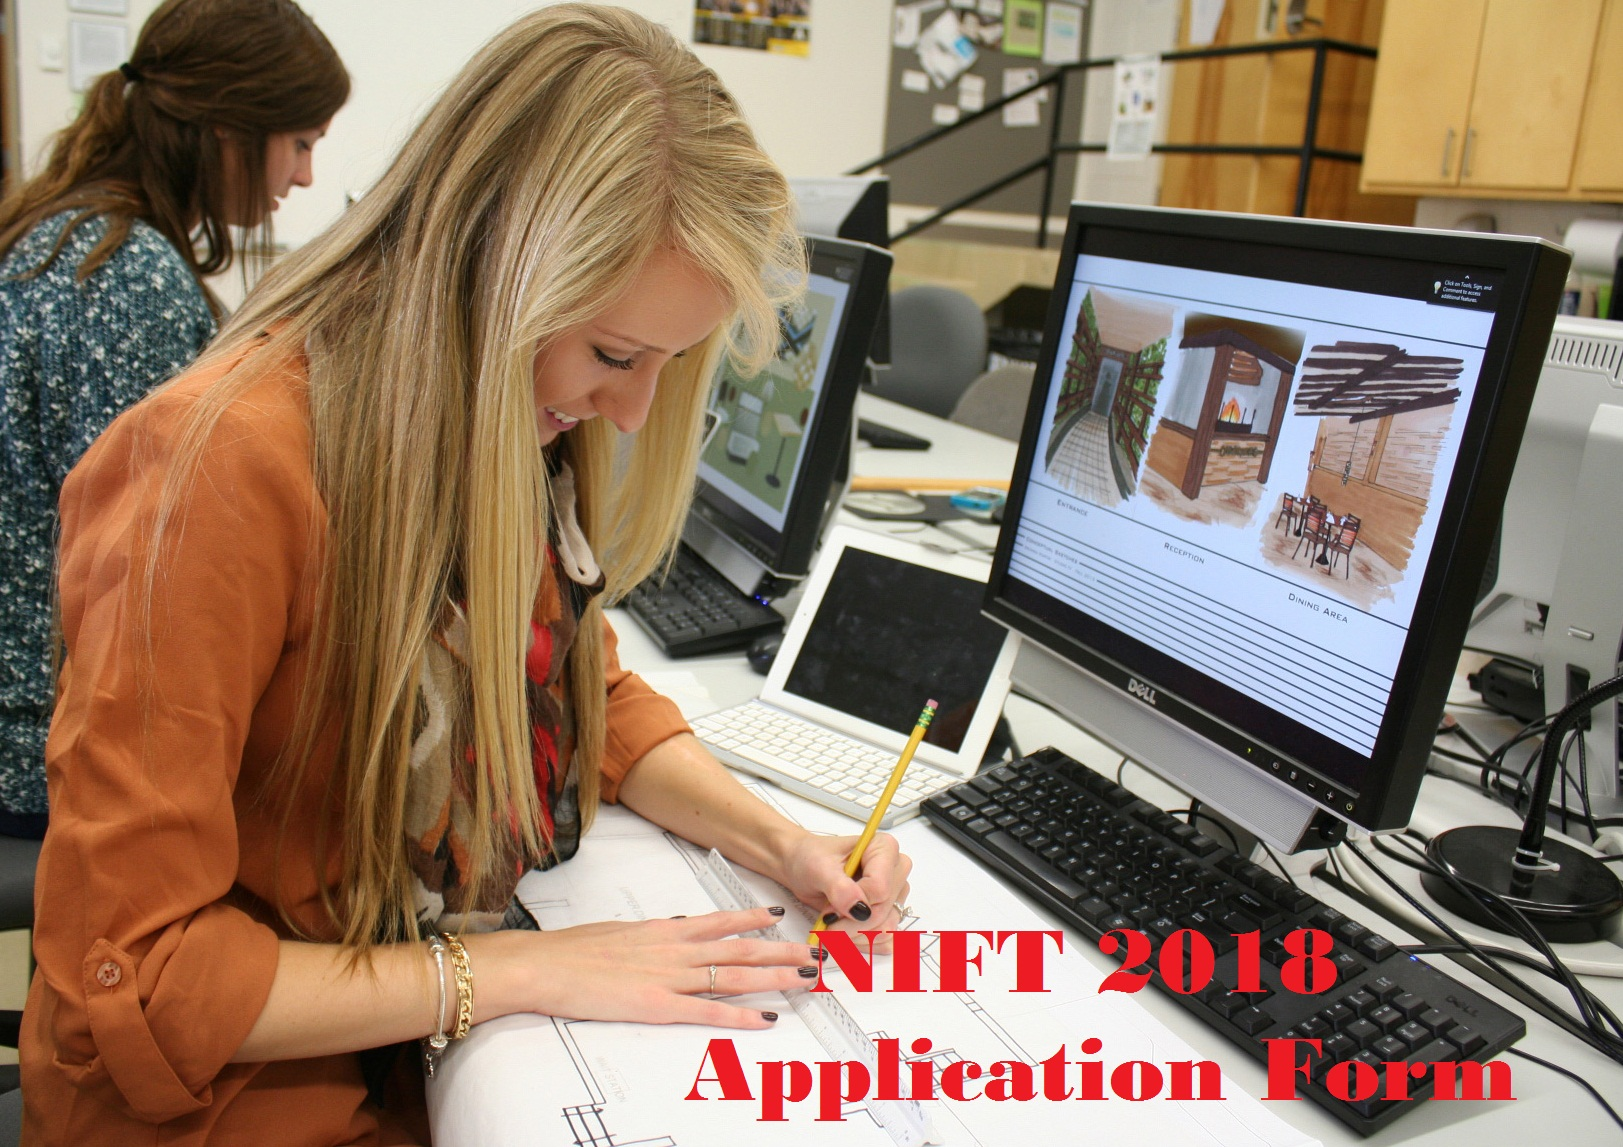 Nift application form 2018 admission form eligibility - Interior decorator students for hire ...